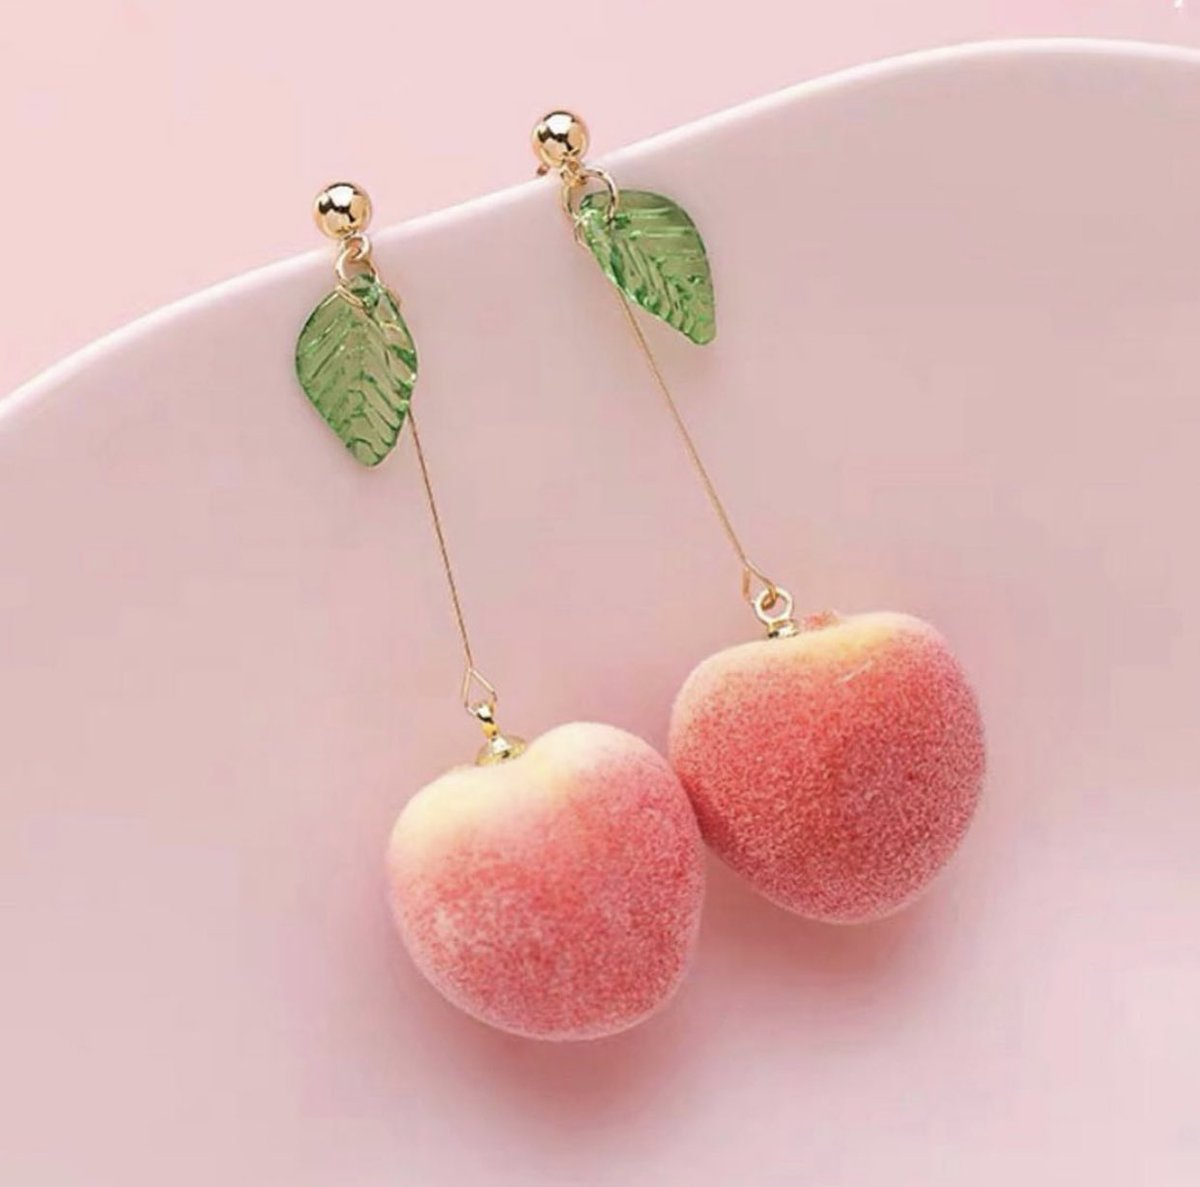 We have earrings that look like candy peaches 🍑 ✨@kawaiitherapy_   #peach #peaches #jewelry  #かわいい #kawaii #cute #sailormoon #cosplay #harajuku #japanesegirl #flower #桃 https://t.co/SVoXLKEBCa